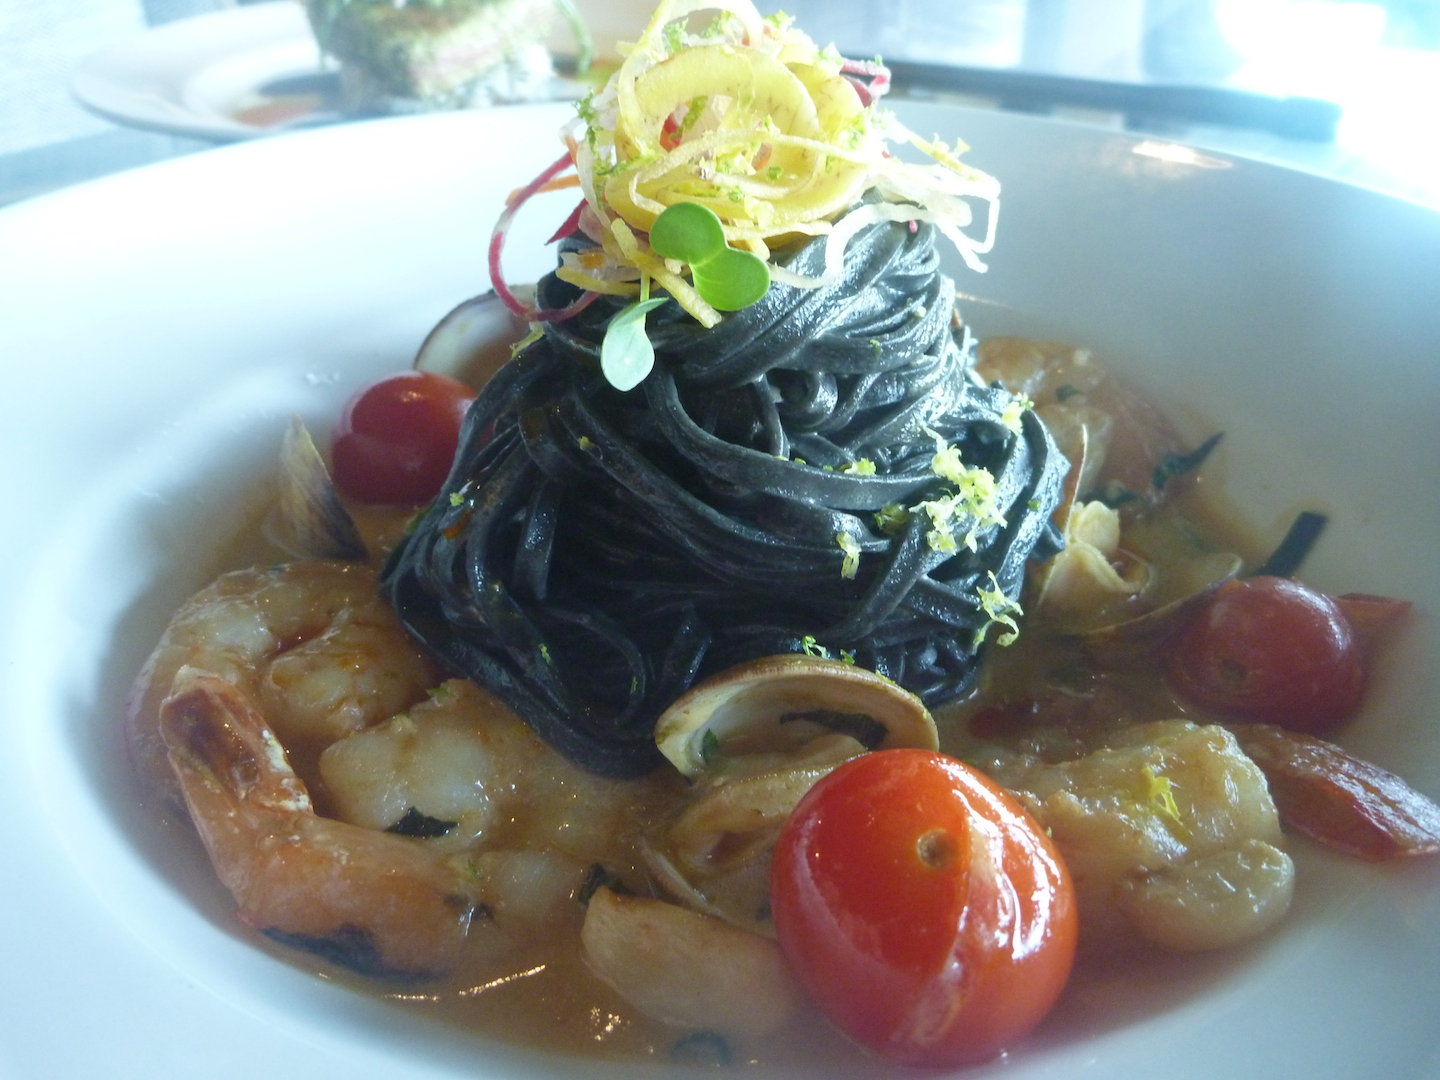 The Kaua'i Shrimp and Clams is all about seafood: It's a play on the classic Italian clam pasta but with an Asian flare. The broth is a thai-curry coconut lobster broth. The clams and the shrimp came from just down the road at Kauai's shrimp farm, and the shrimps are big and meaty. The pasta is squid ink.